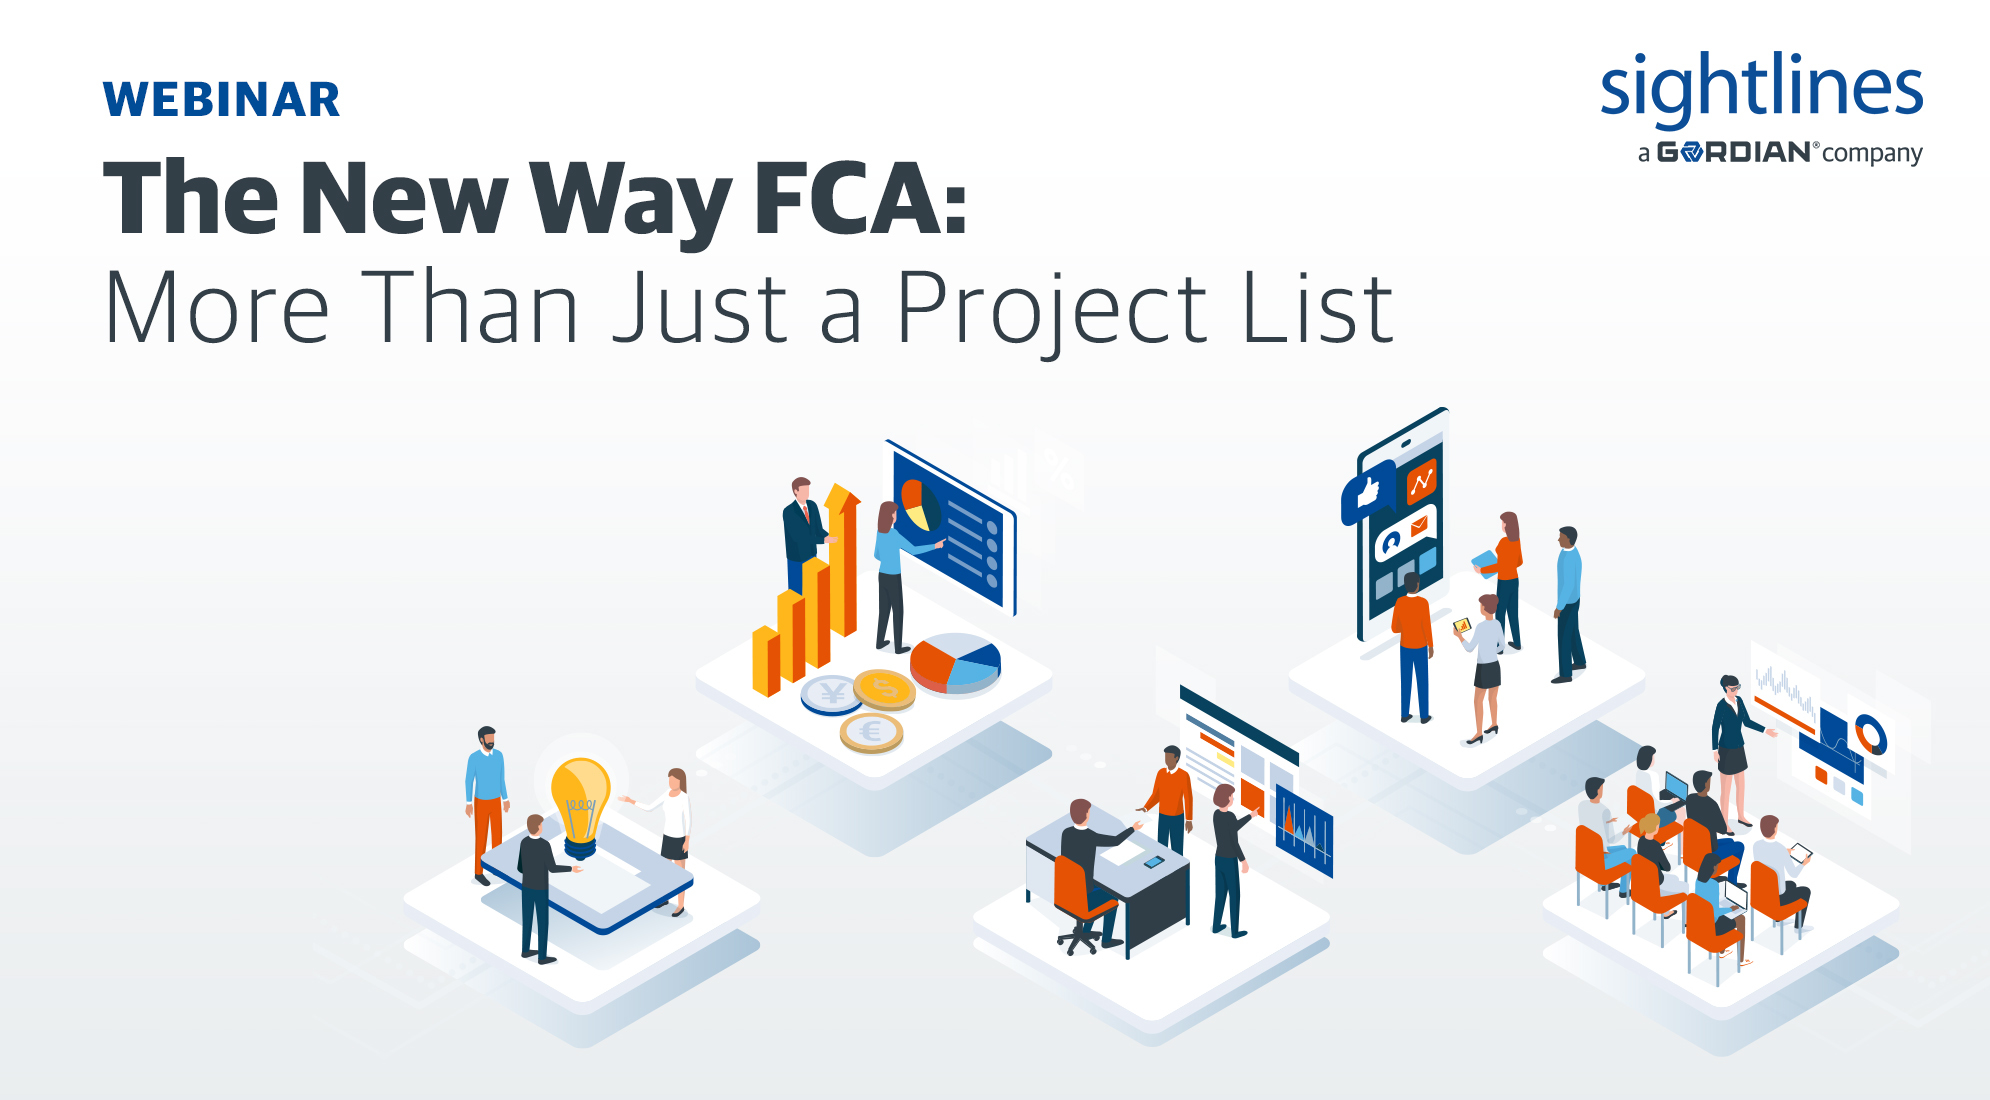 The New Way FCA: More Than Just A Project List